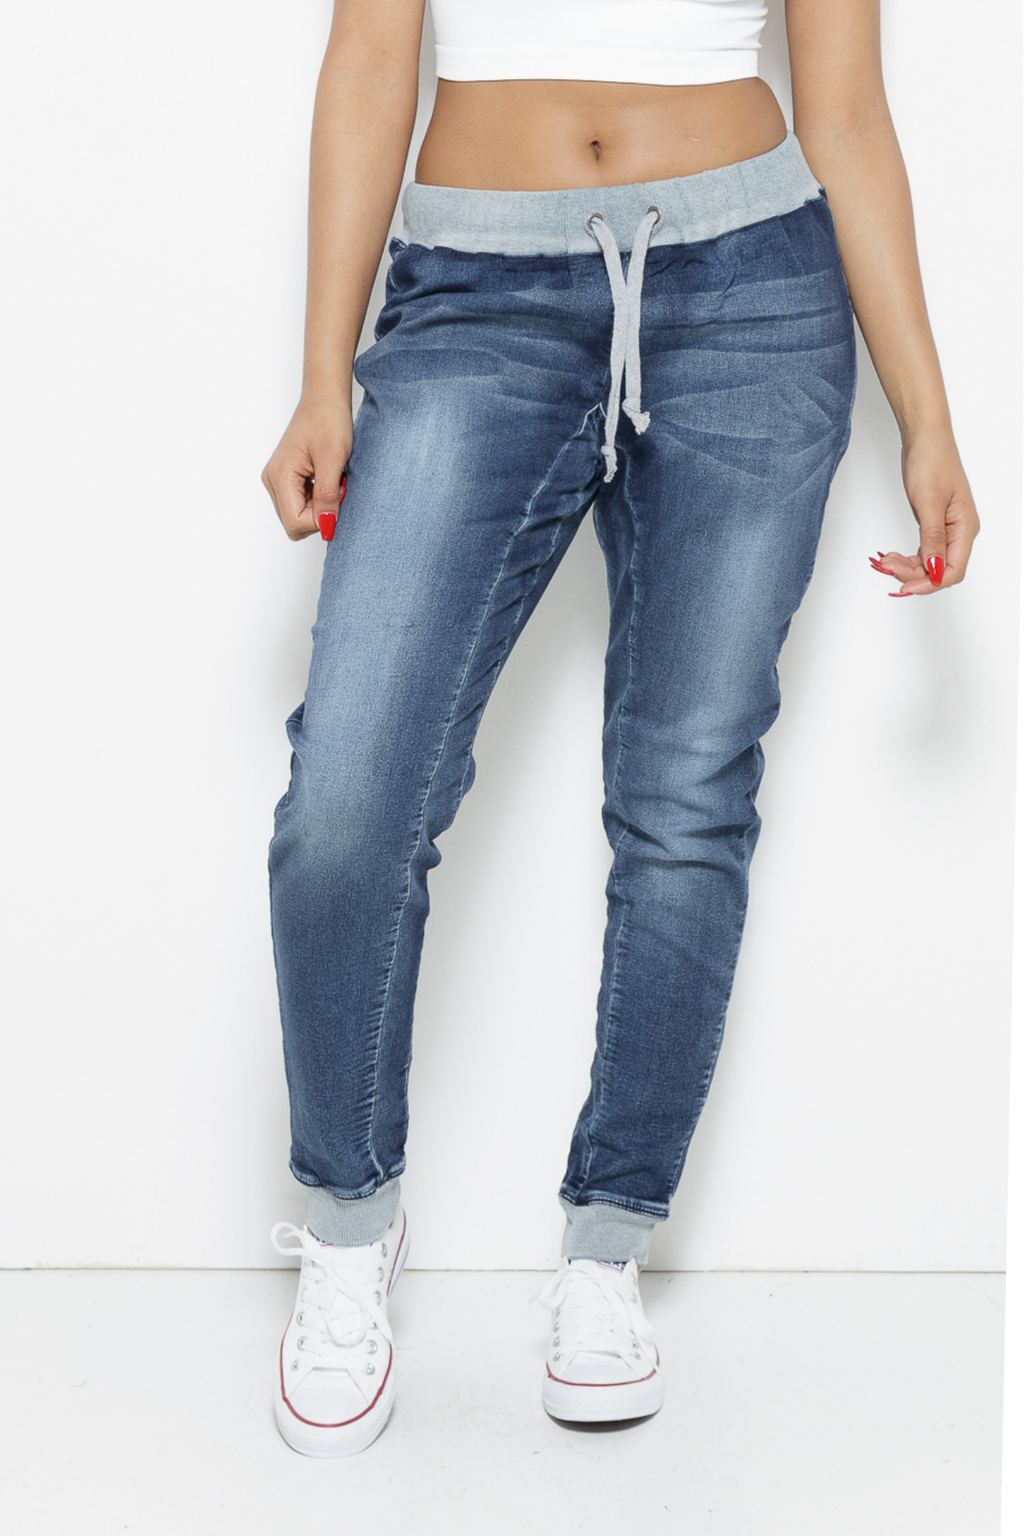 Jeanie Jogger Denim Jeans Clothing Poetic Justice